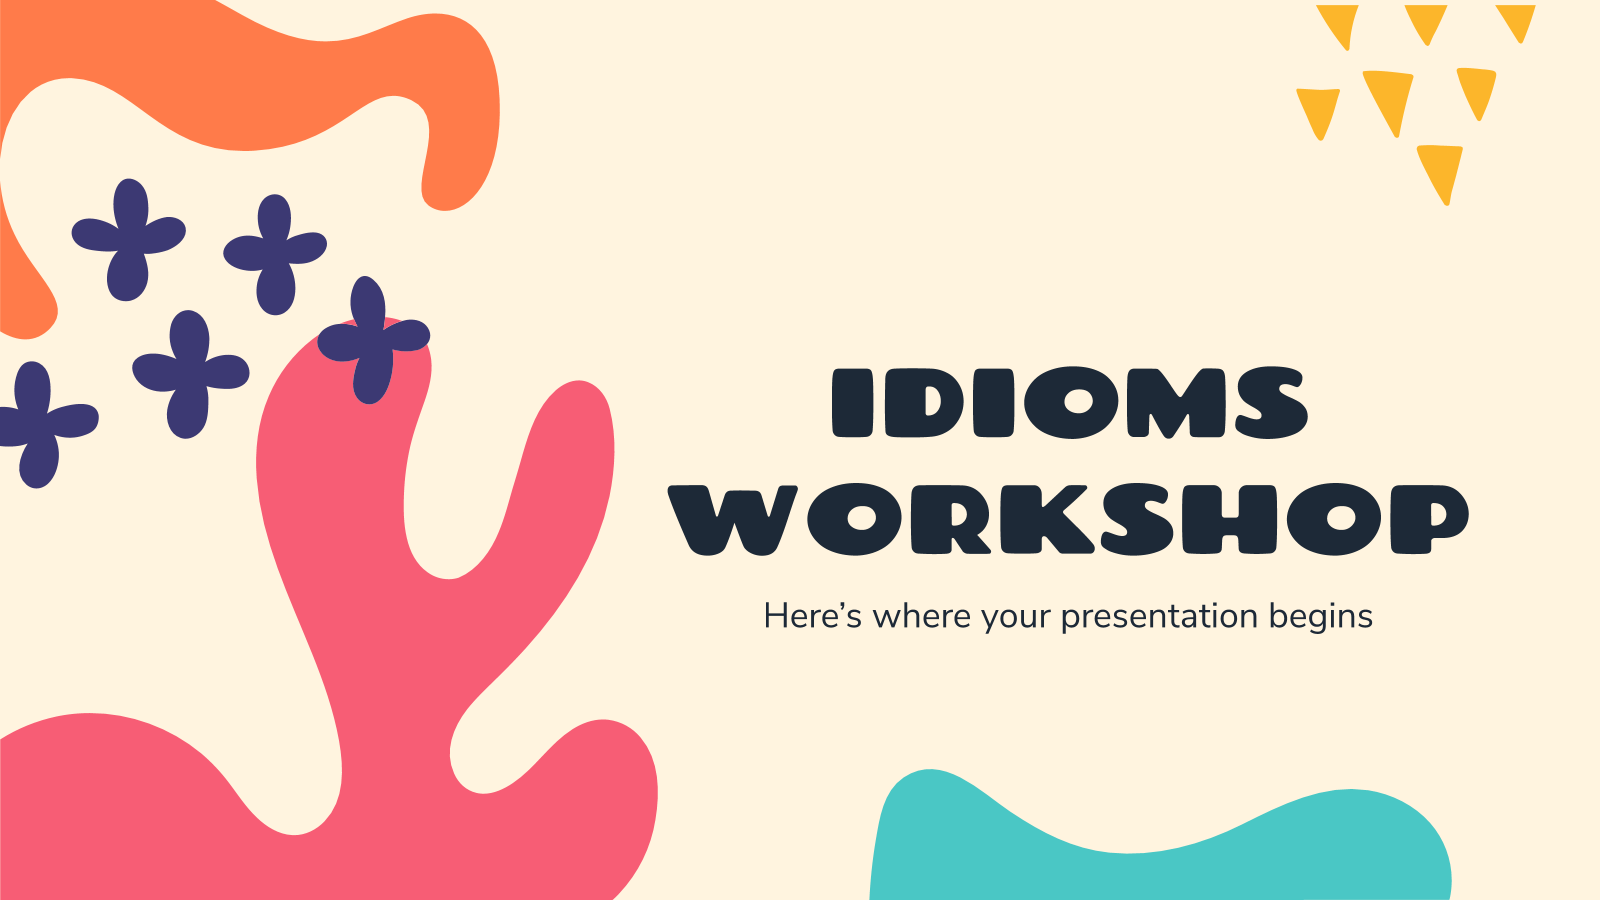 Idioms Workshop presentation template